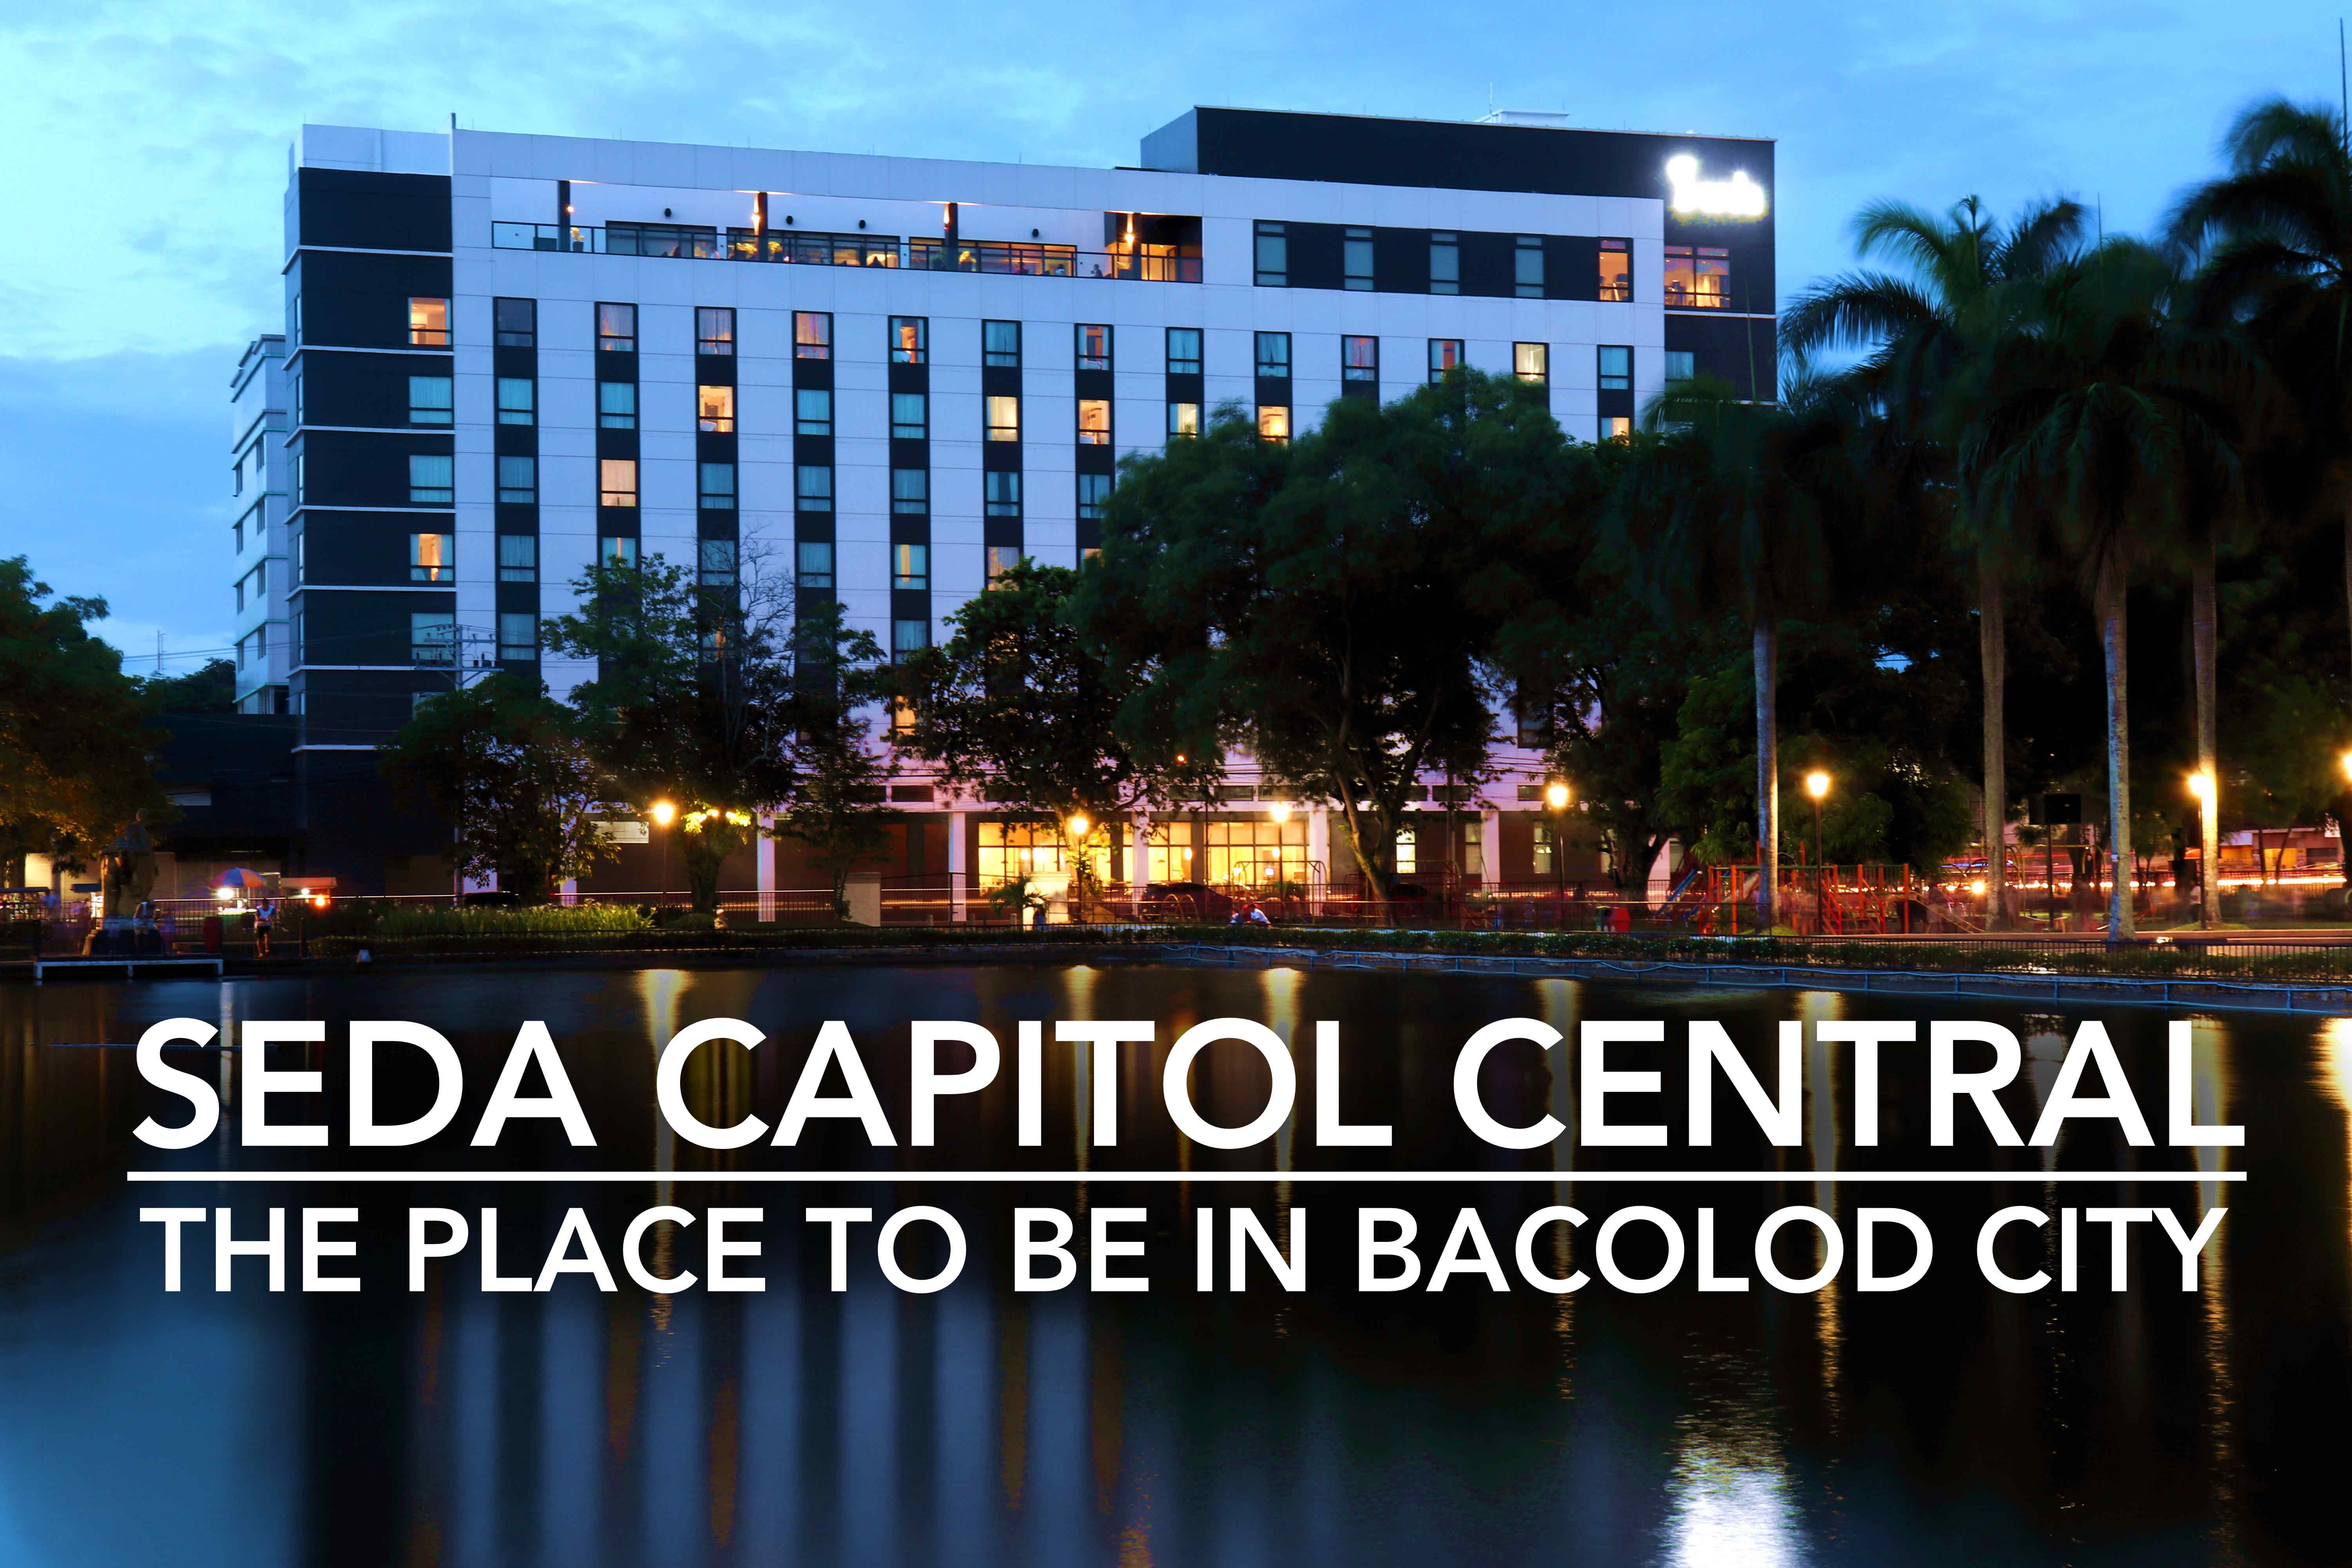 Seda Capitol Central The Place To Be In Bacolod City